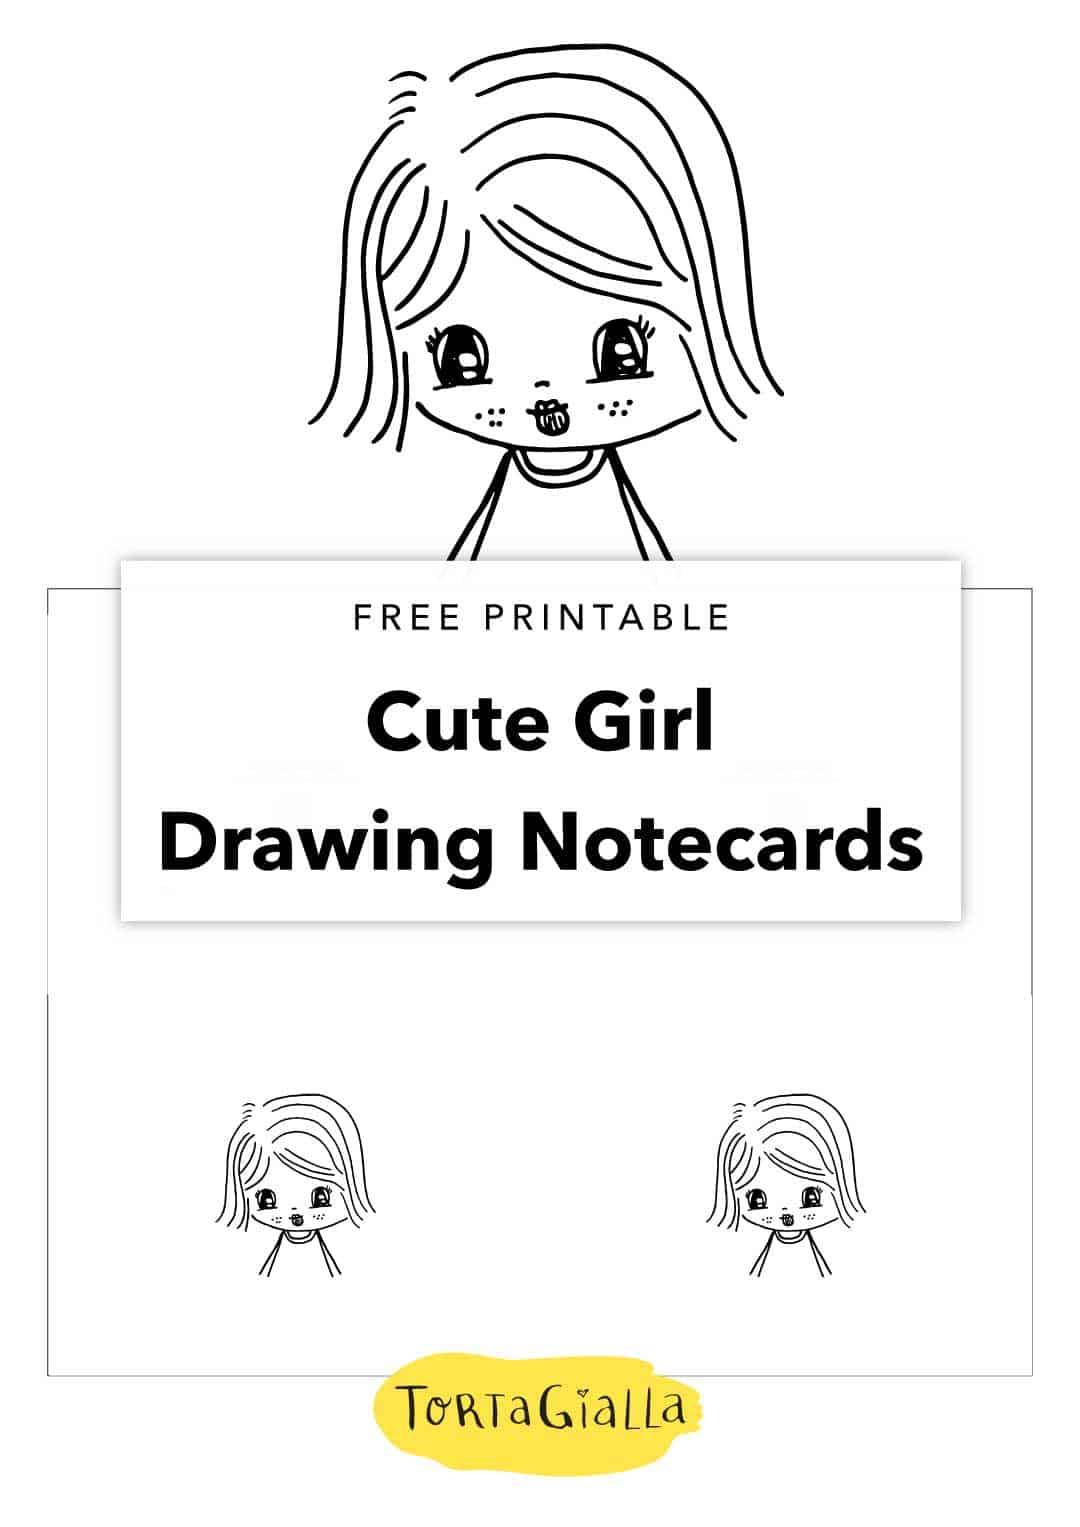 Free Printable Cute Girl Drawing Notecards